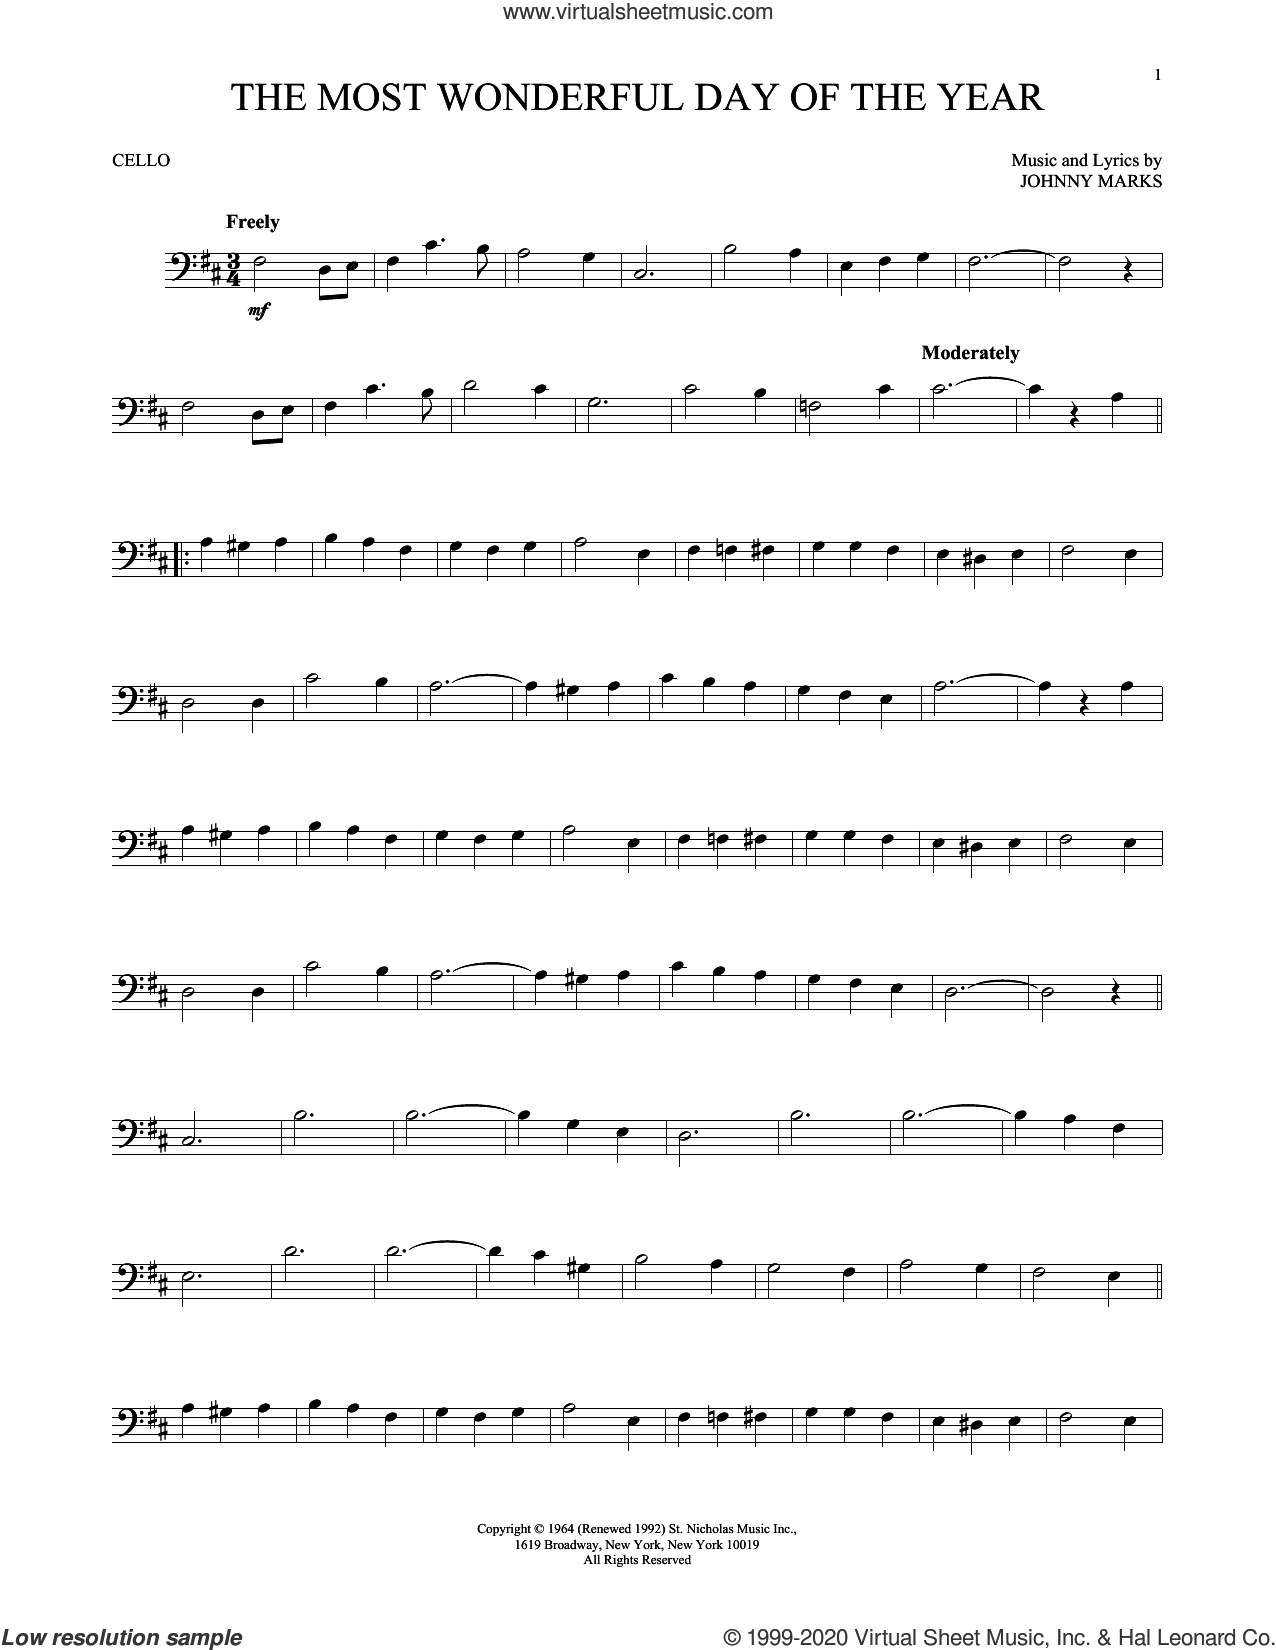 The Most Wonderful Day Of The Year sheet music for cello solo by Johnny Marks, intermediate skill level